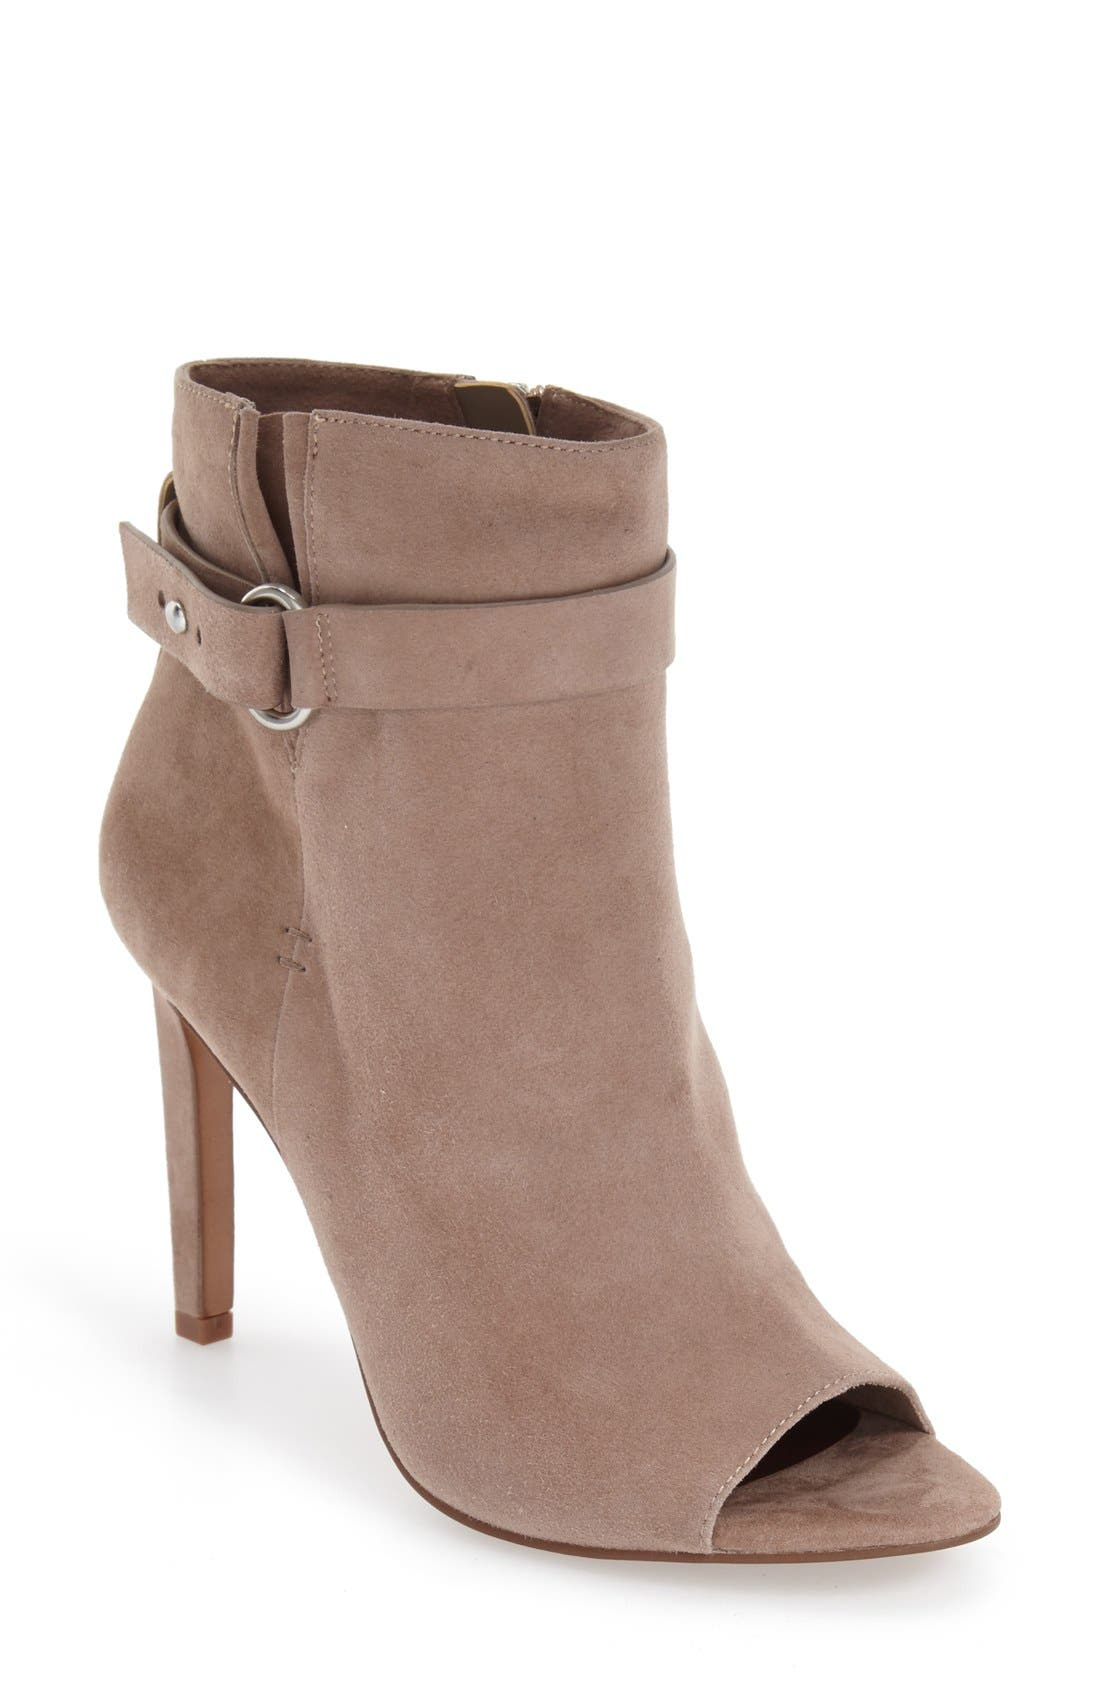 Alternate Image 1 Selected - BCBGeneration 'Carolena' Peep Toe Bootie (Women)